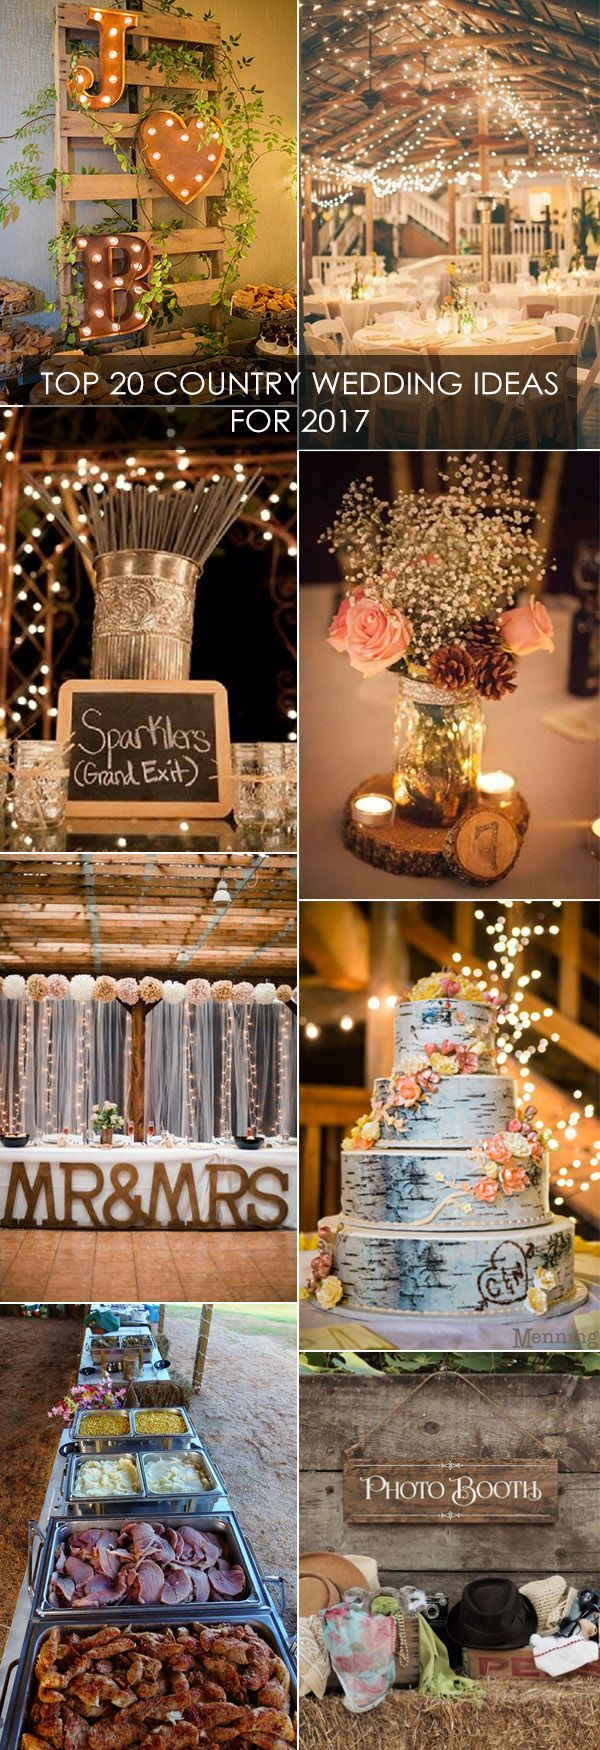 Wedding decorations country  Top  Country Wedding Ideas Youull Love for  Trends  wedding